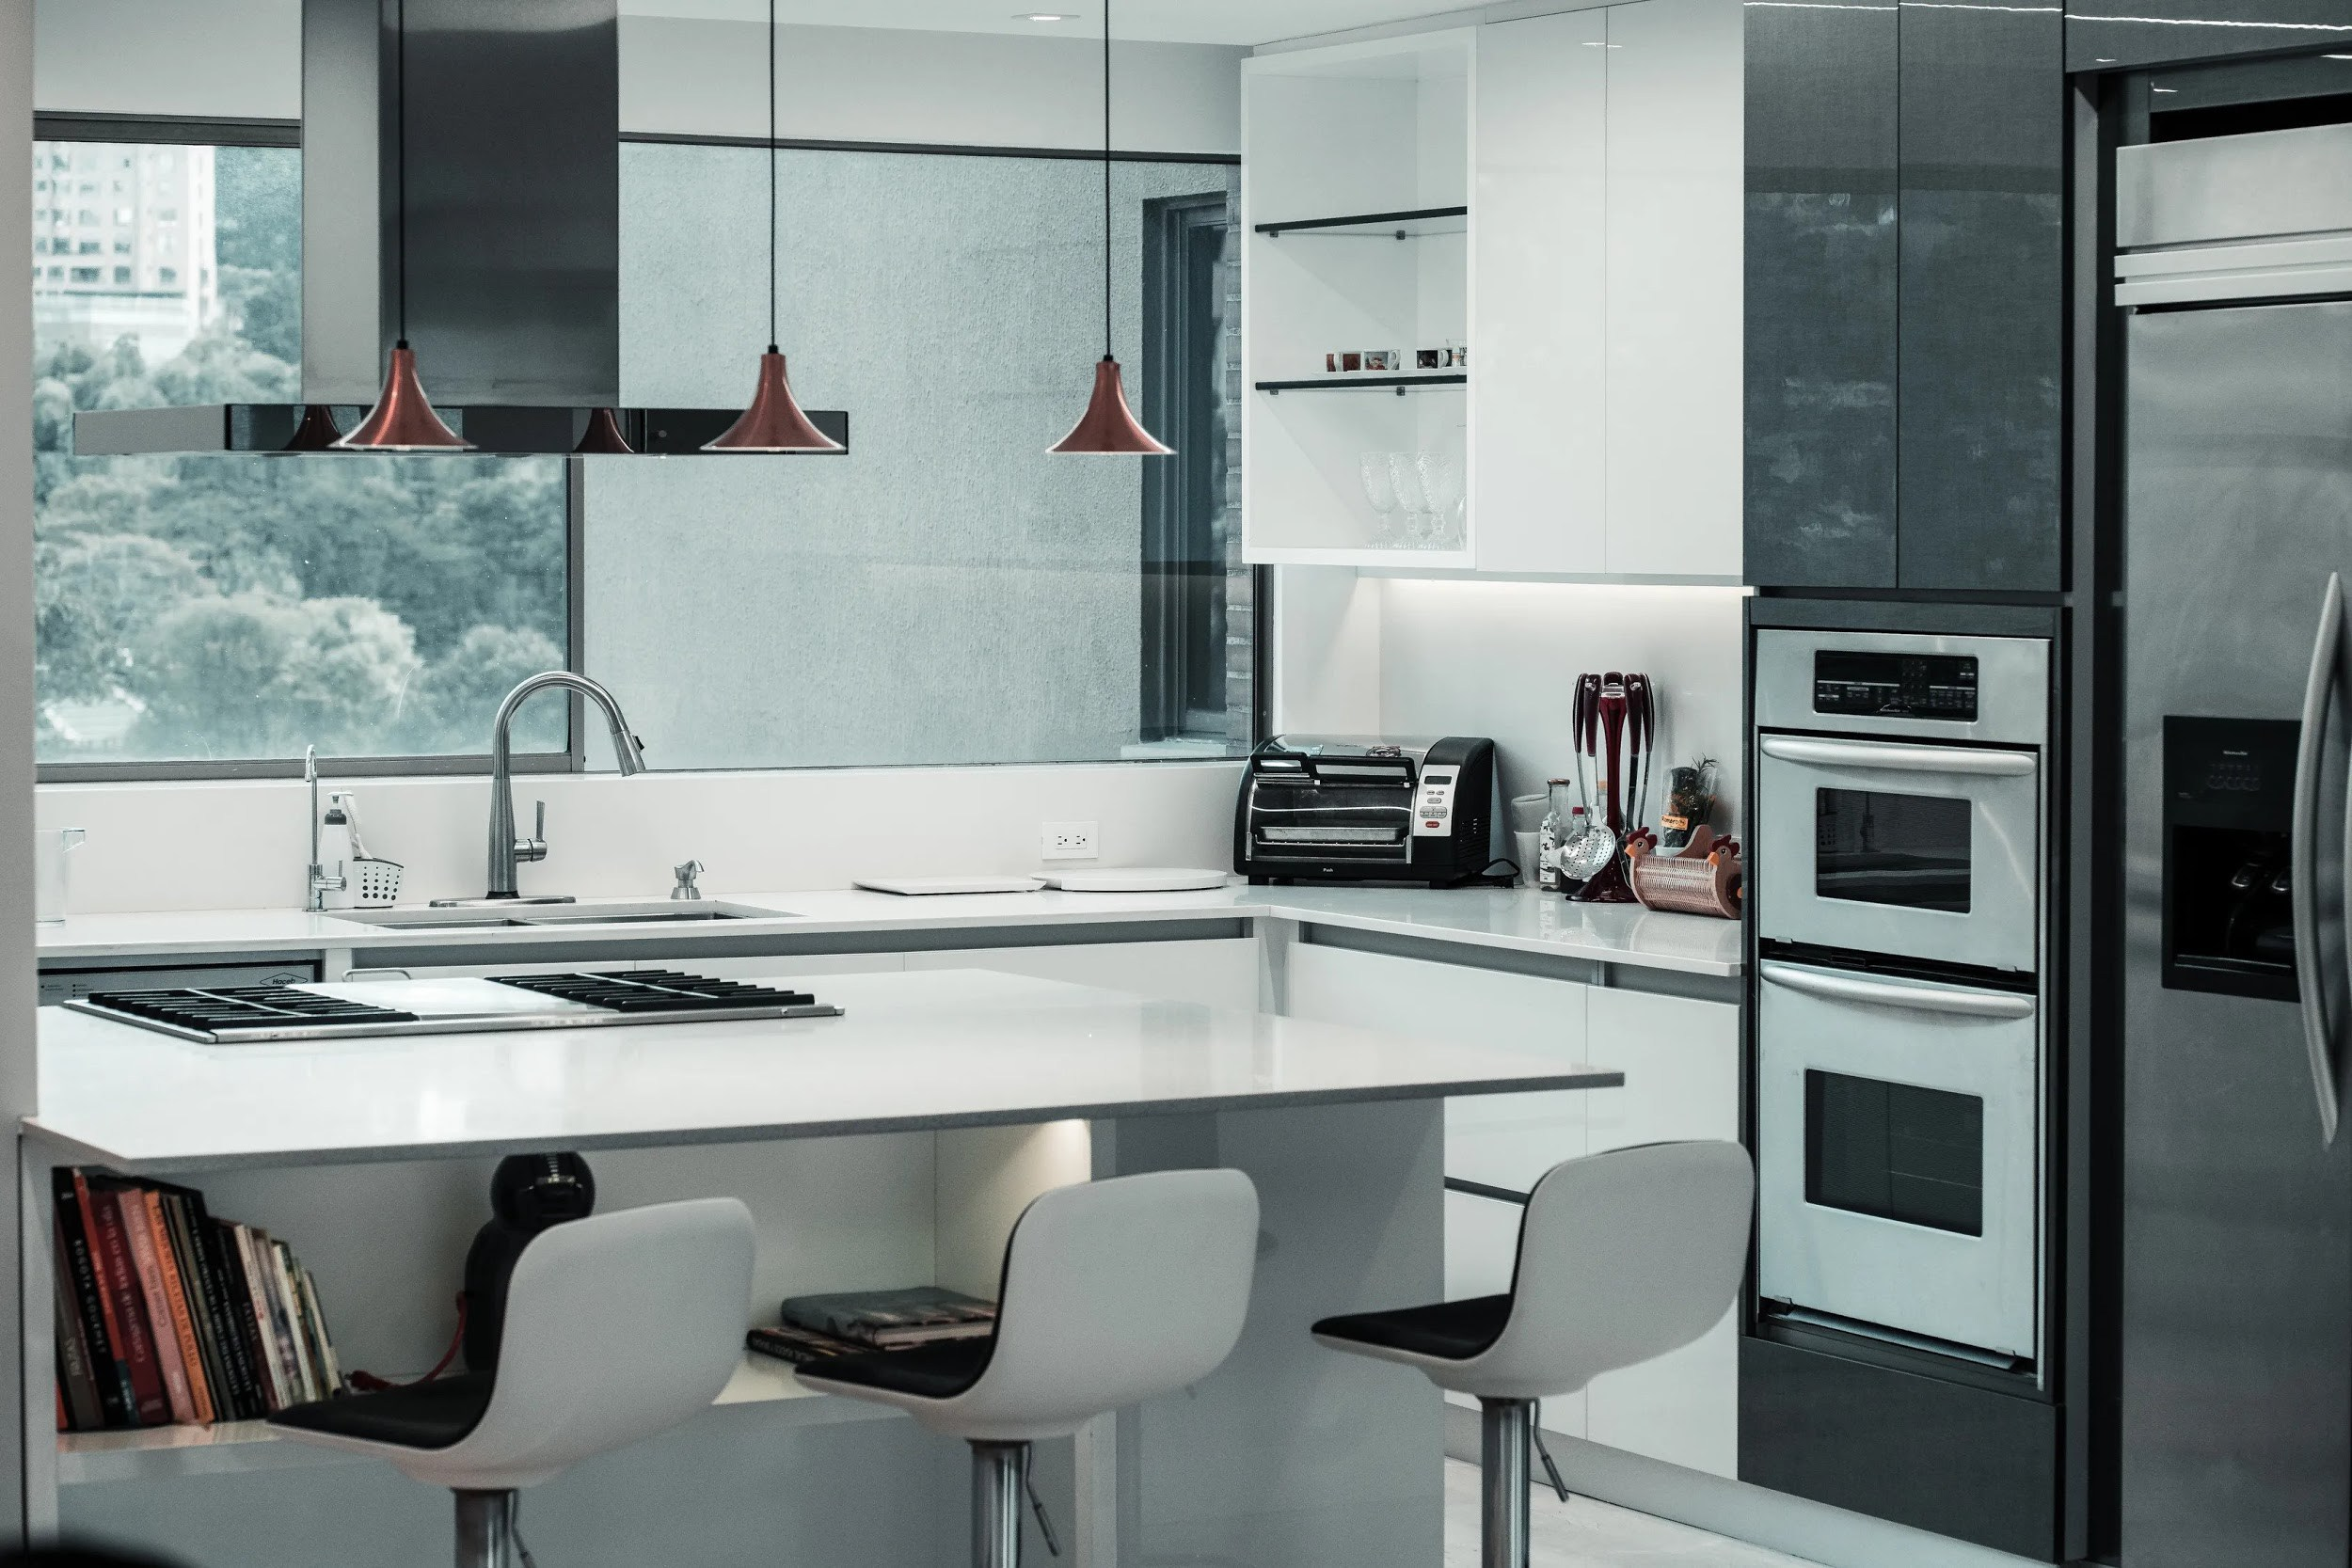 31. Modern House Kitchen Design With Simplicity